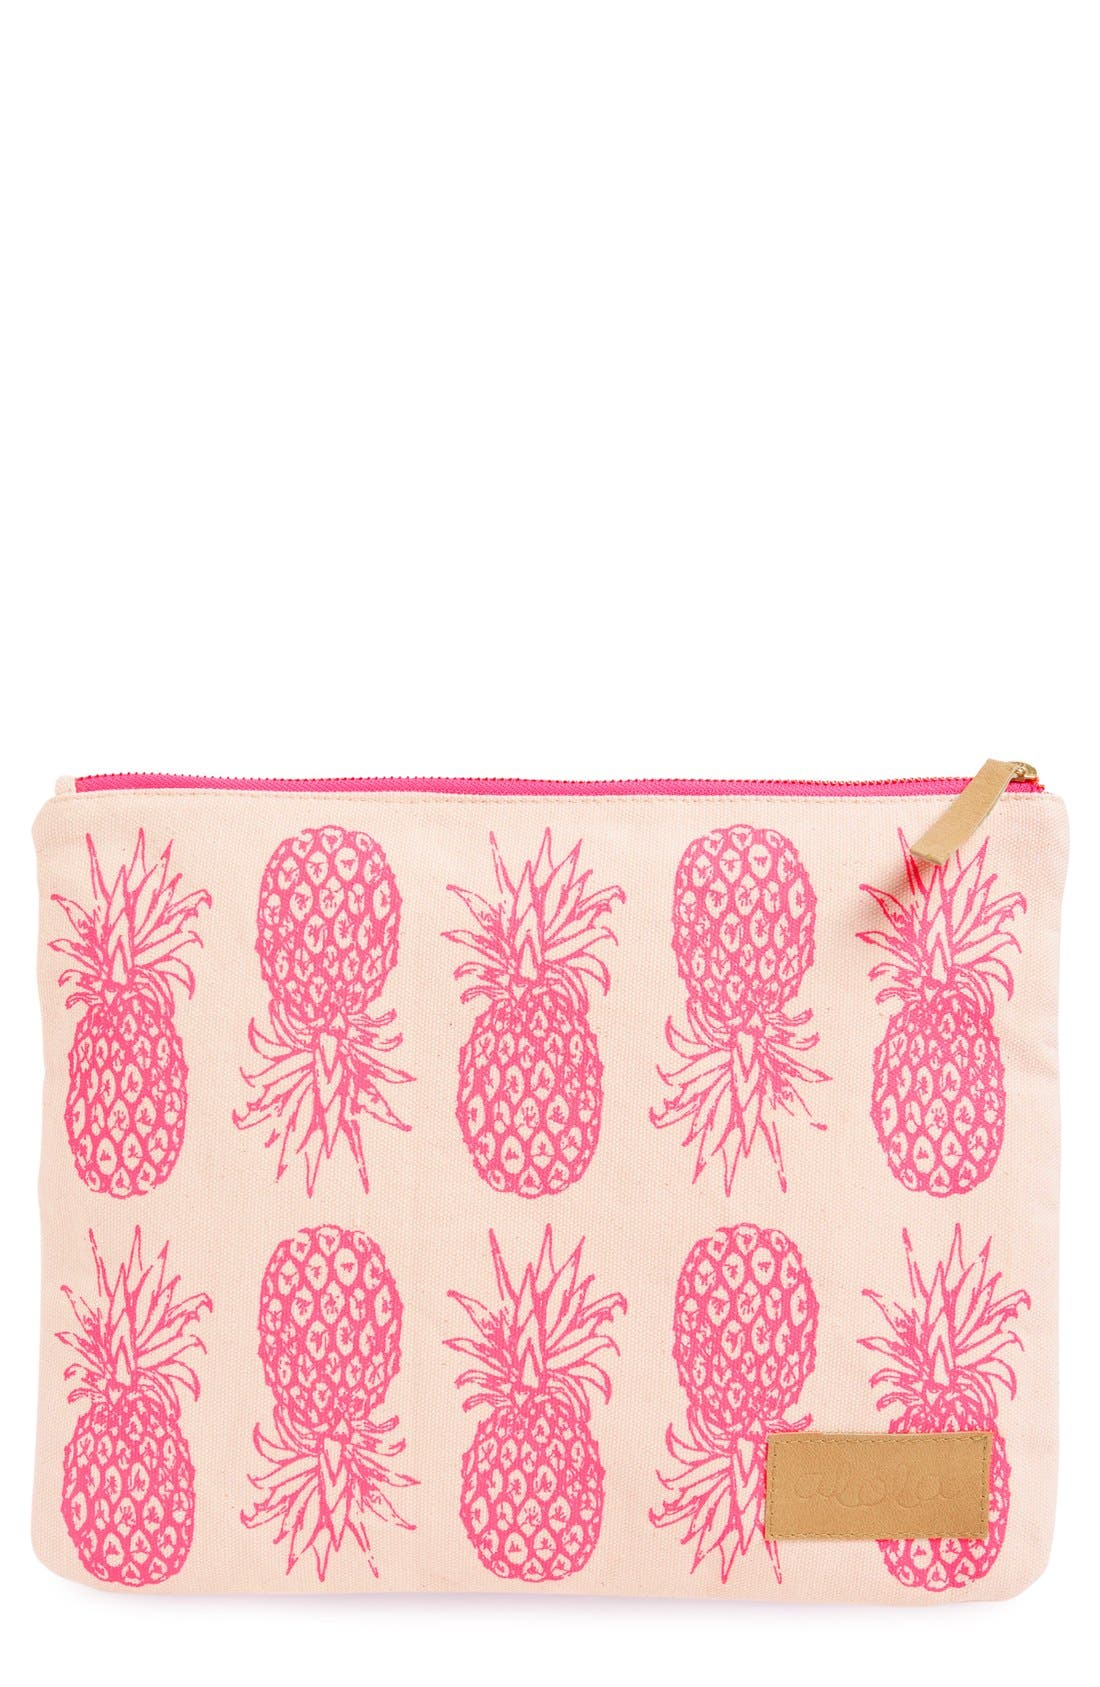 Main Image - alola Pineapple Print Canvas Clutch